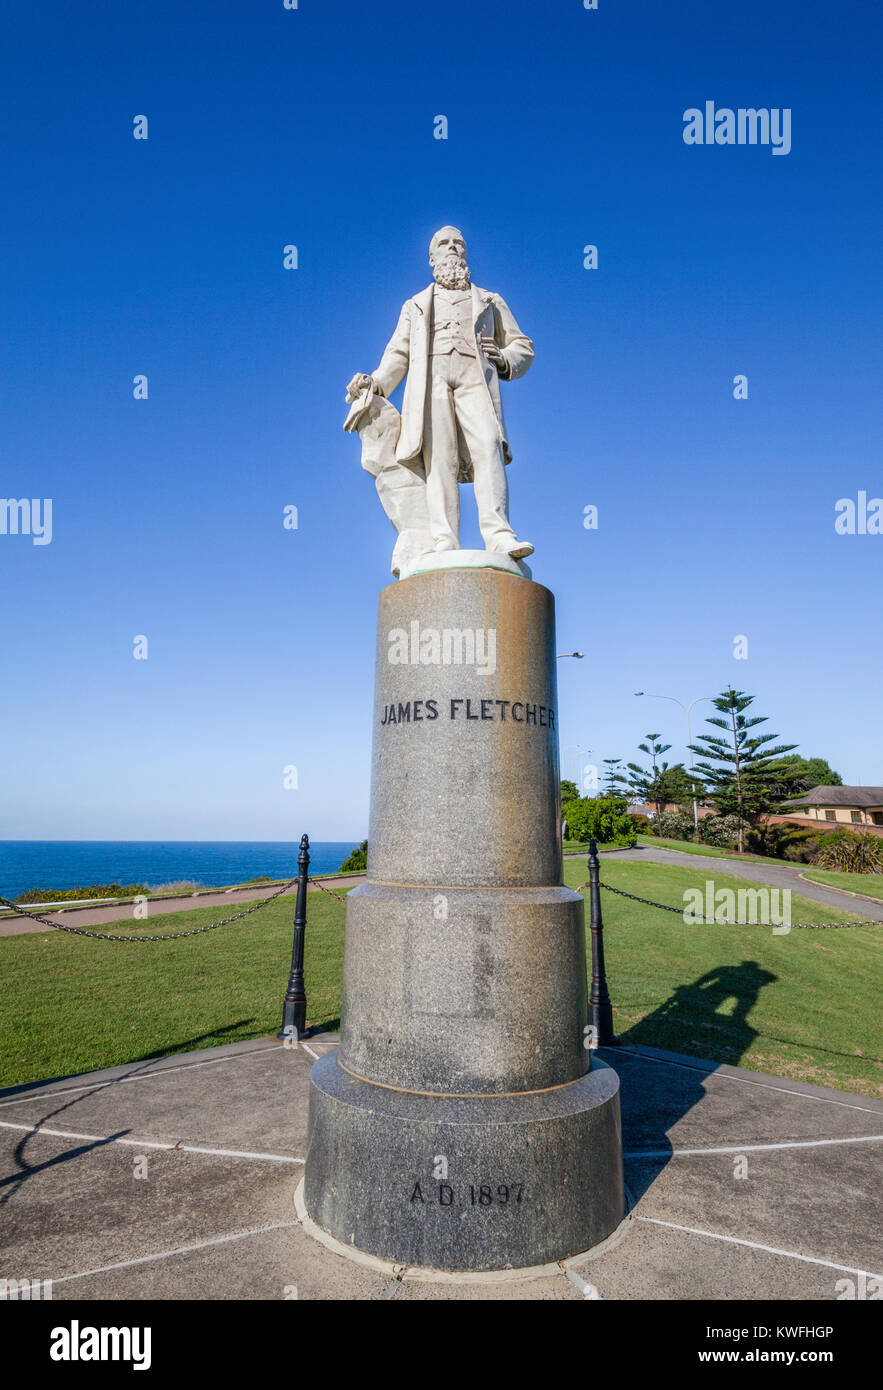 Australia, New South Wales, Newcastle, James Fletcher memorial, the statue commemorates James Fletcher (1834-1891), - Stock Image